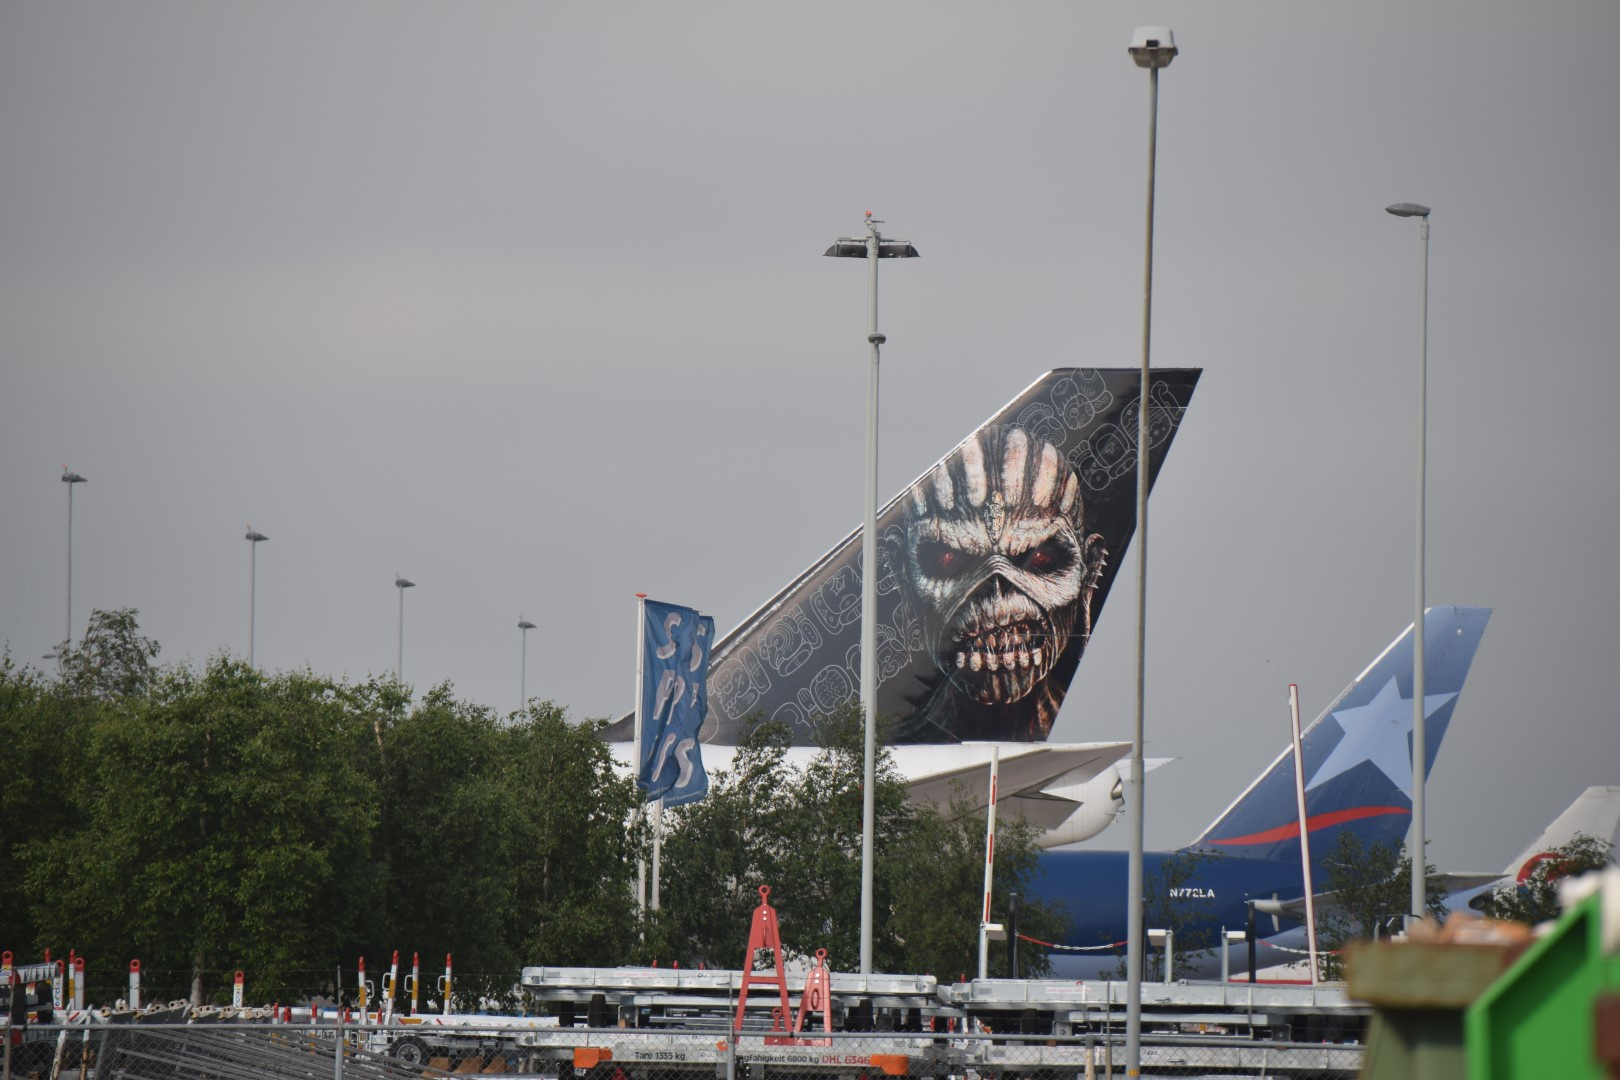 Iron Maiden - Ed Force One - Schiphol, Amsterdam (02)